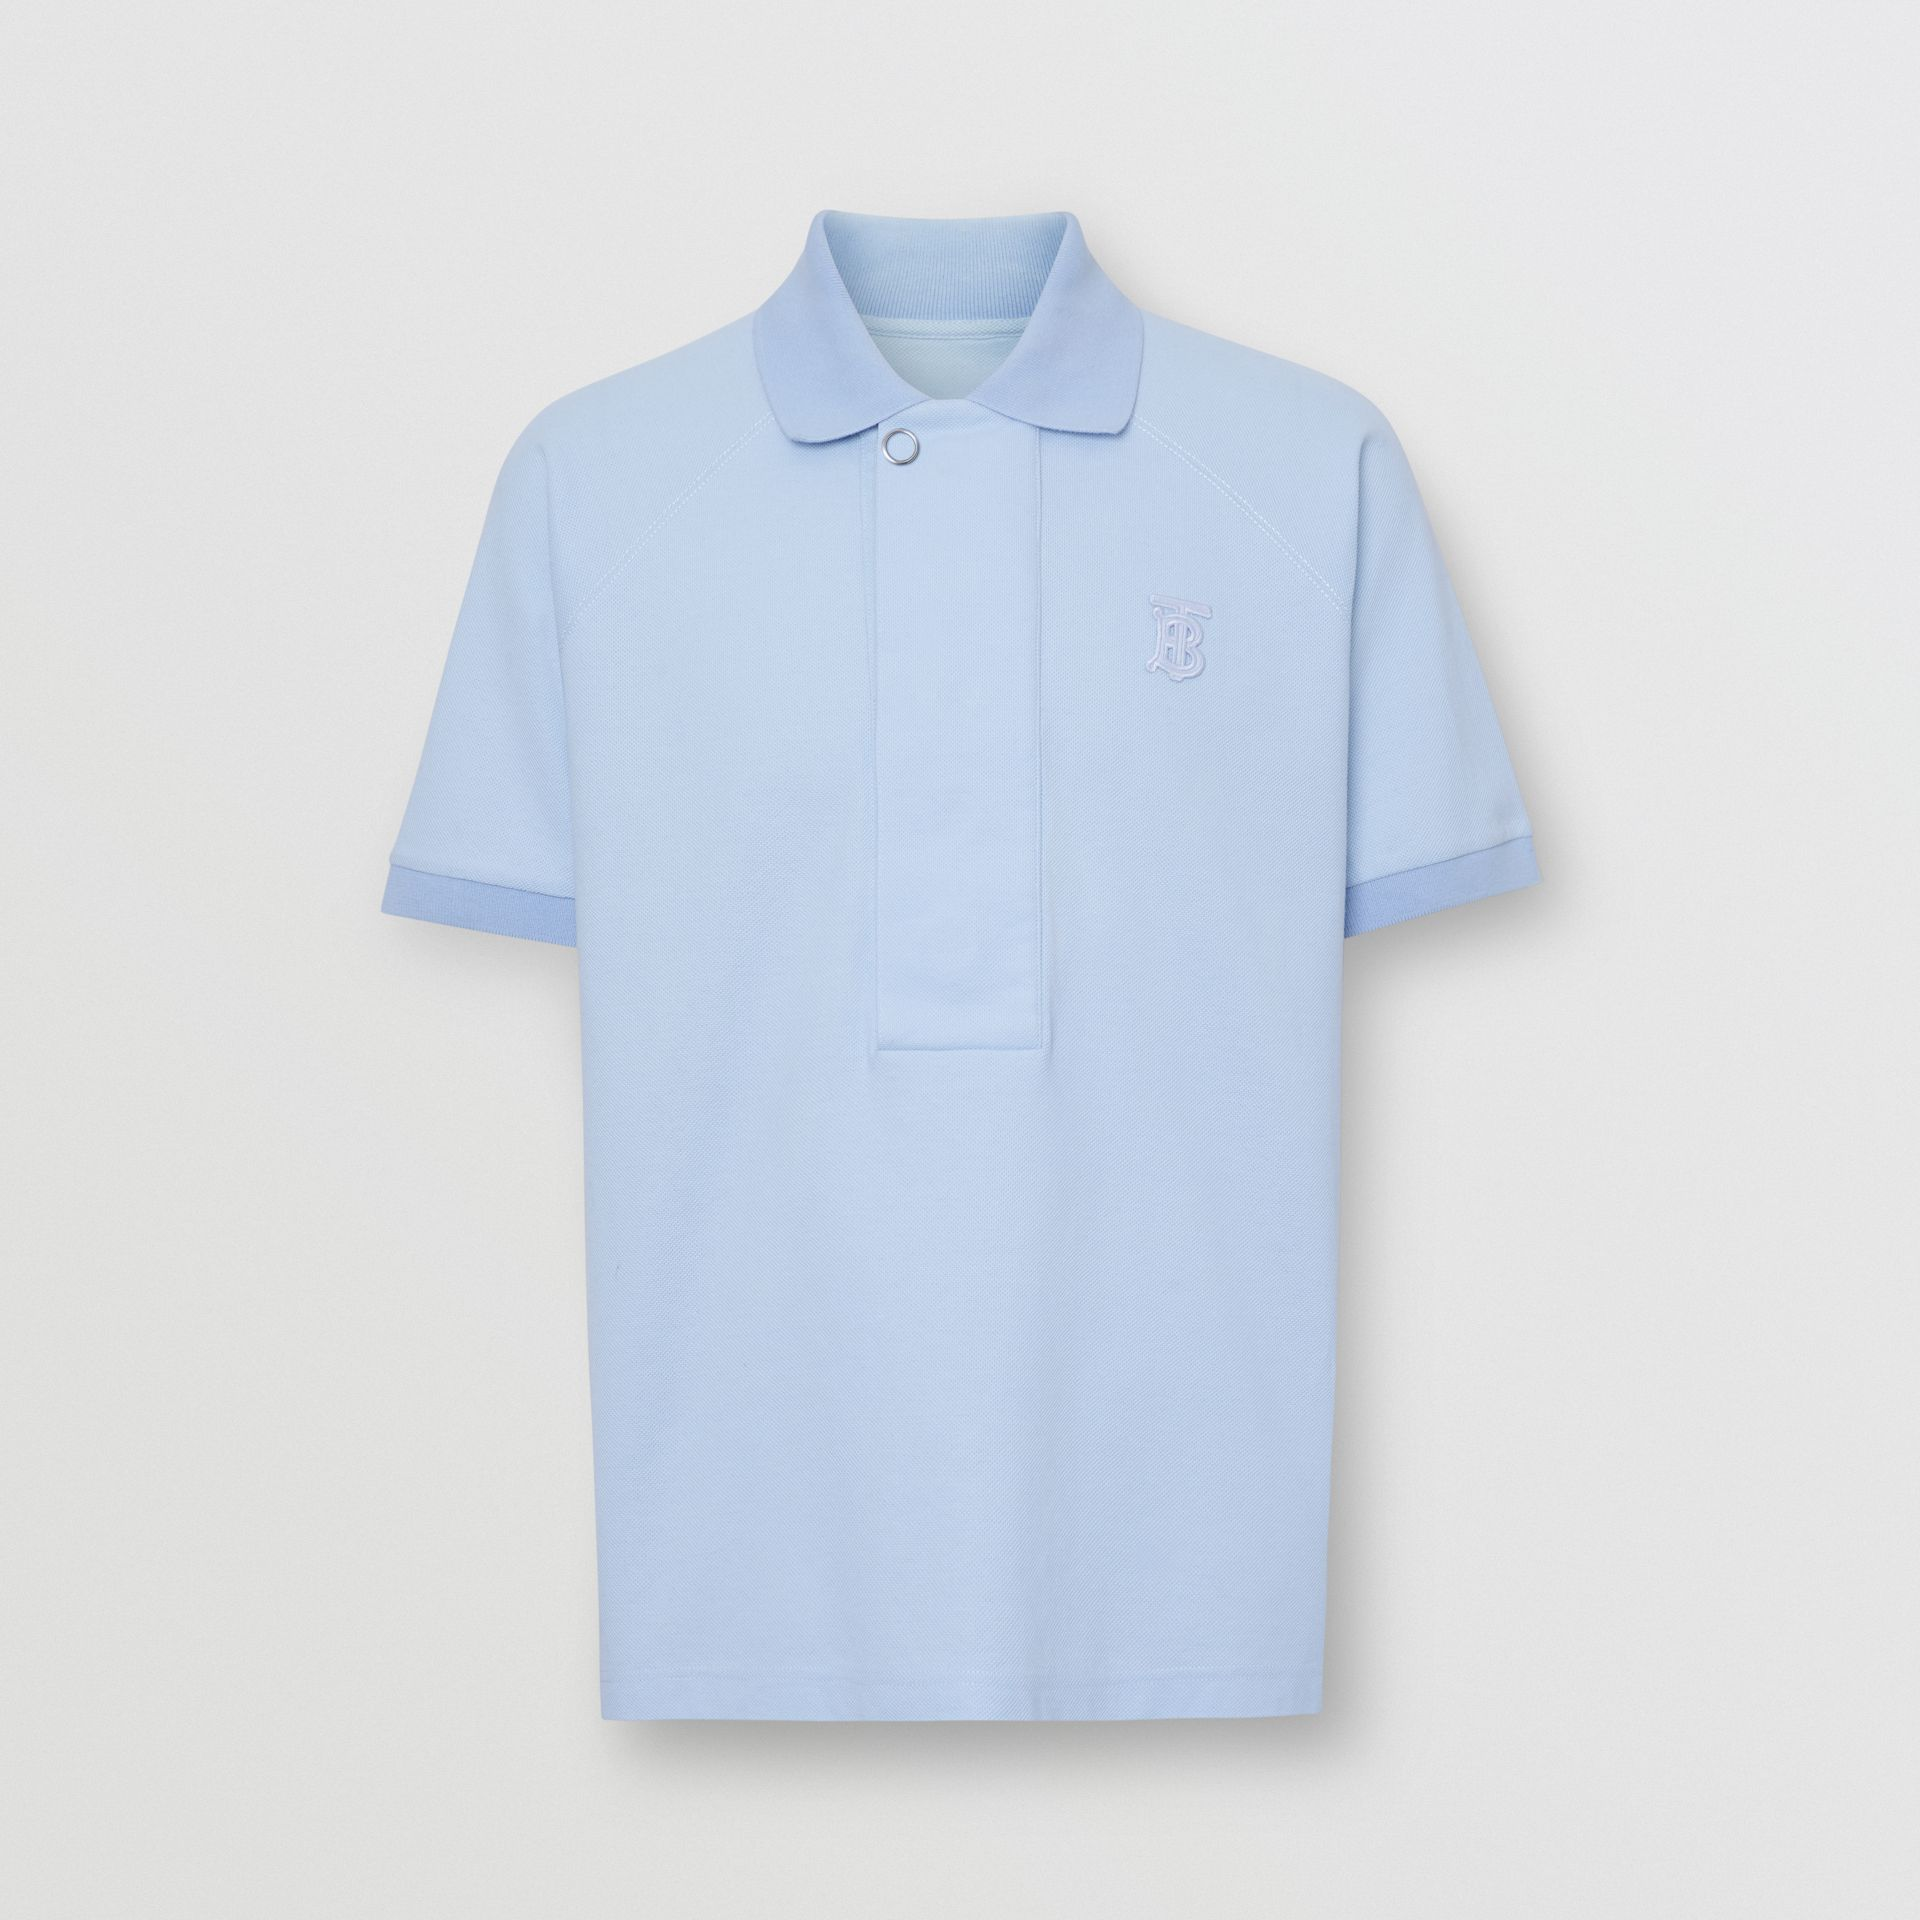 Monogram Motif Cotton Piqué Polo Shirt in Pale Blue | Burberry Canada - gallery image 3